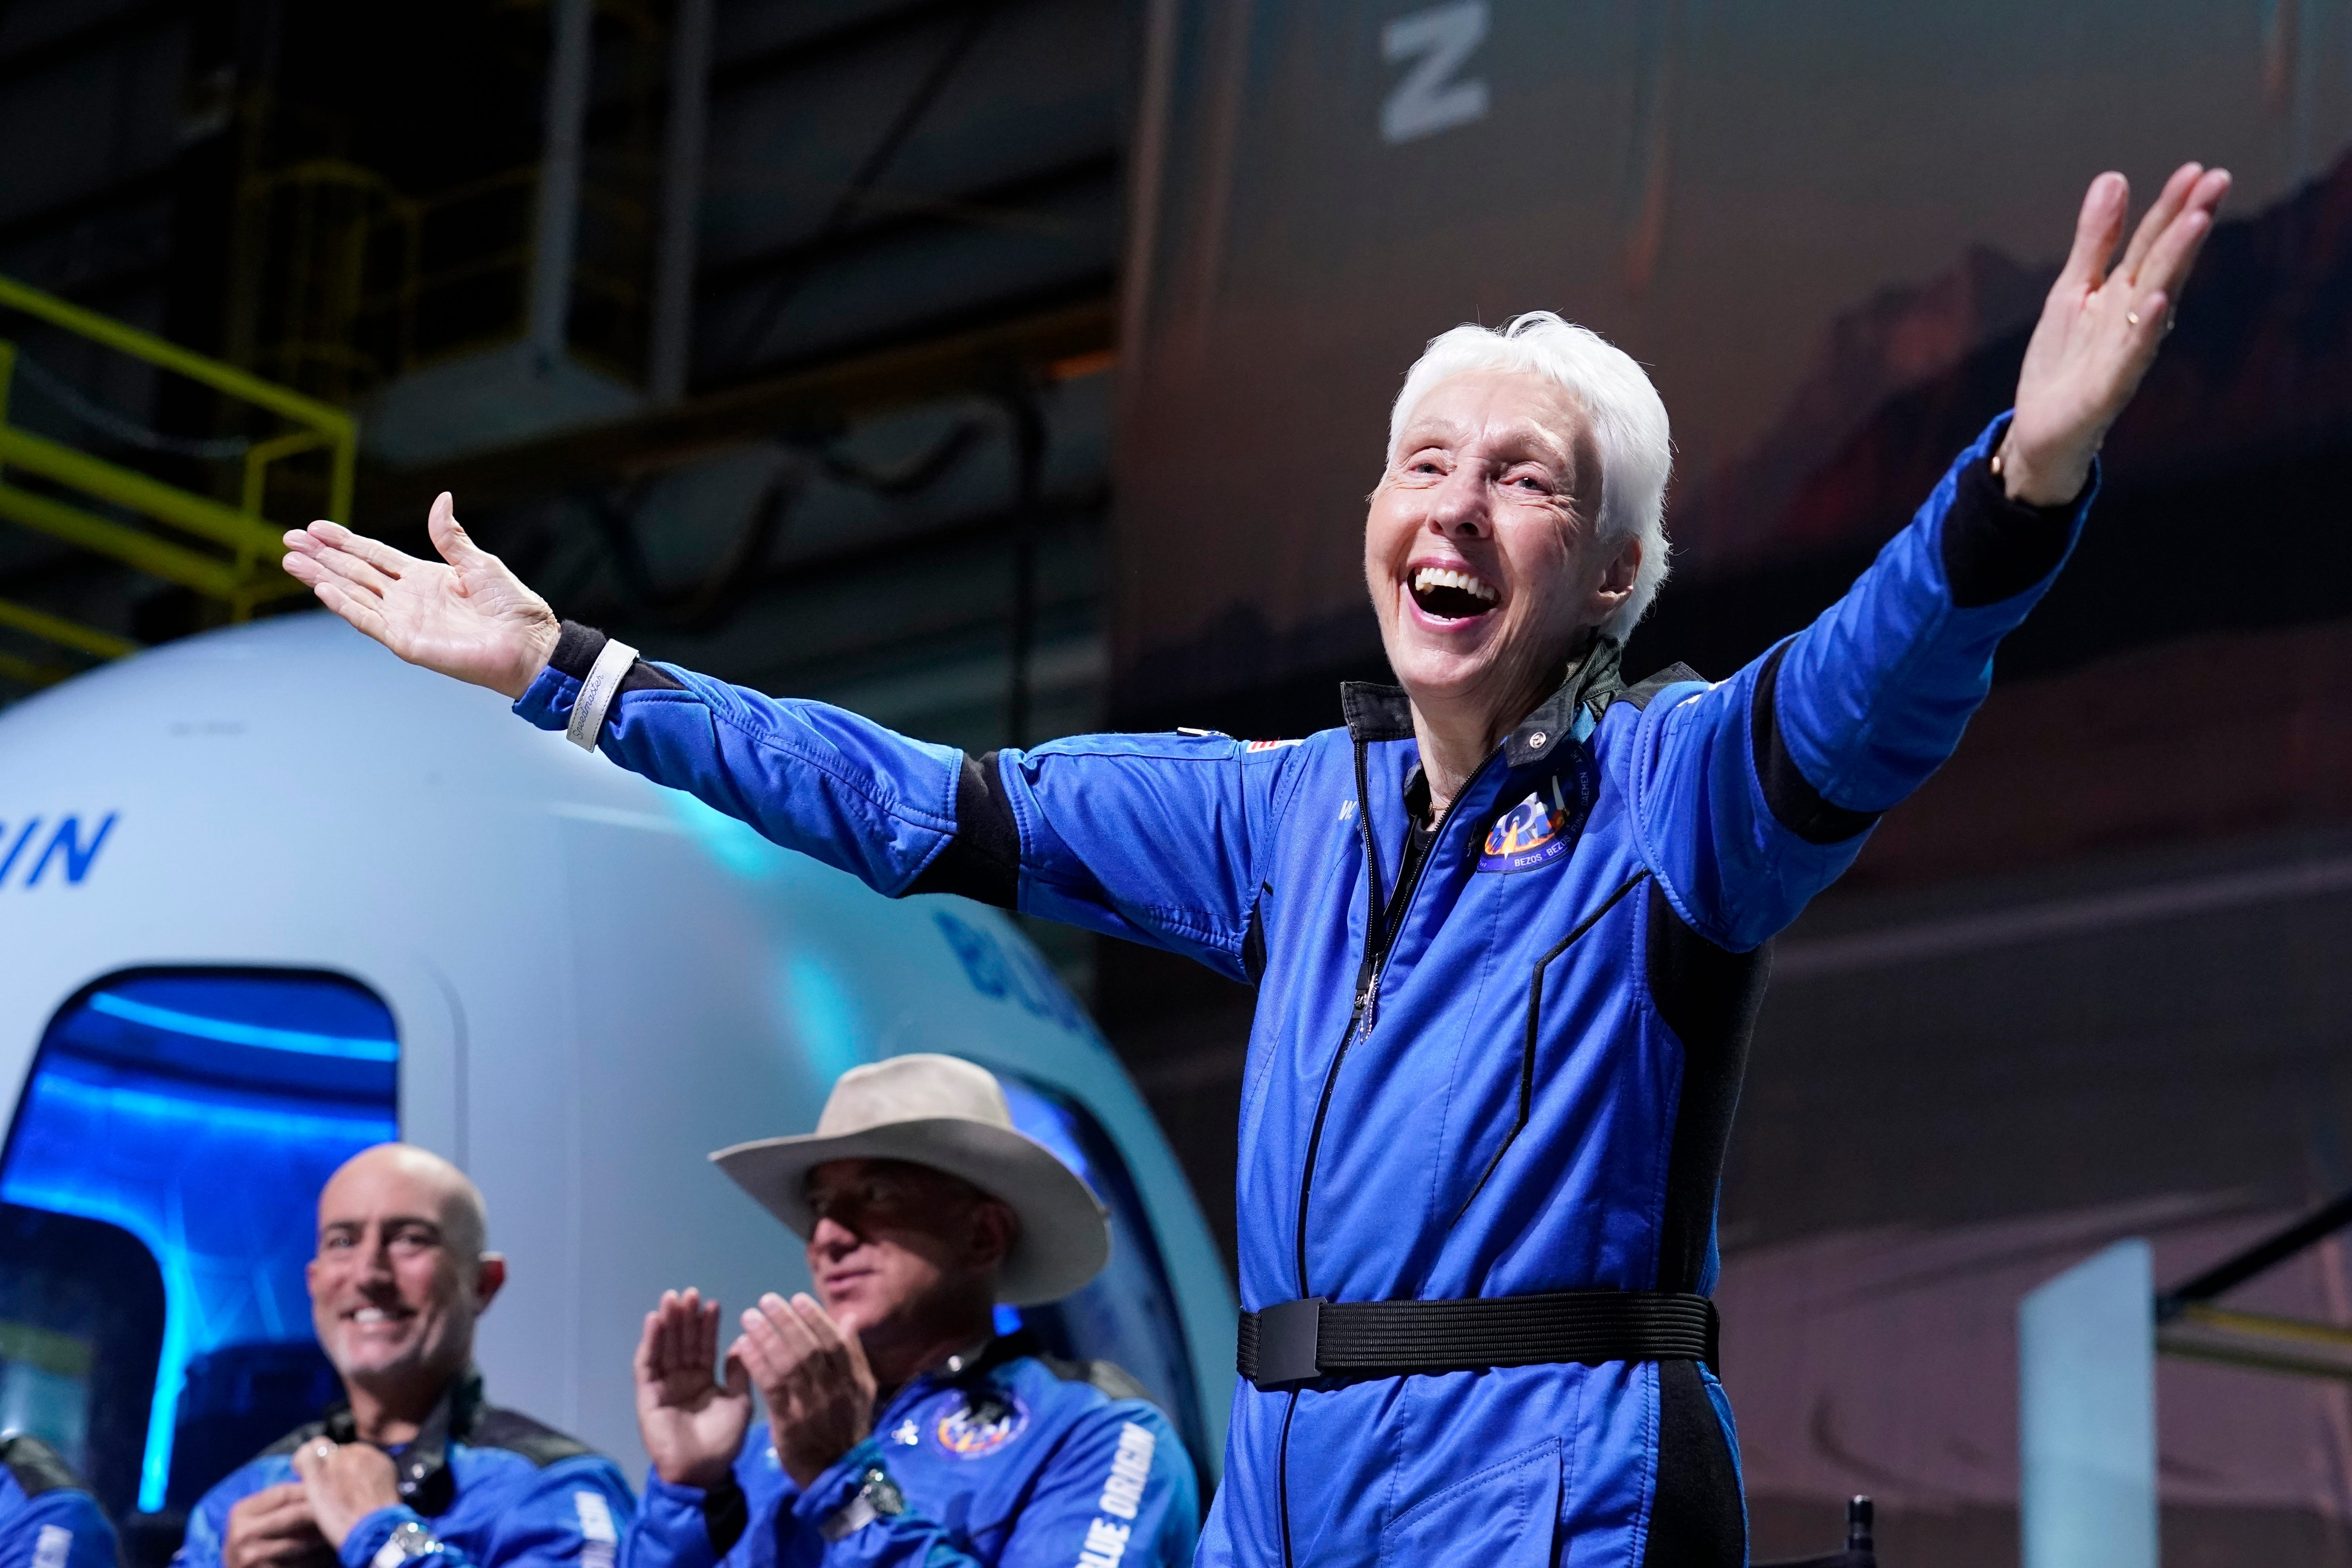 Wally Funk lifts her arms as she describes her experience aboard the Blue Origin.